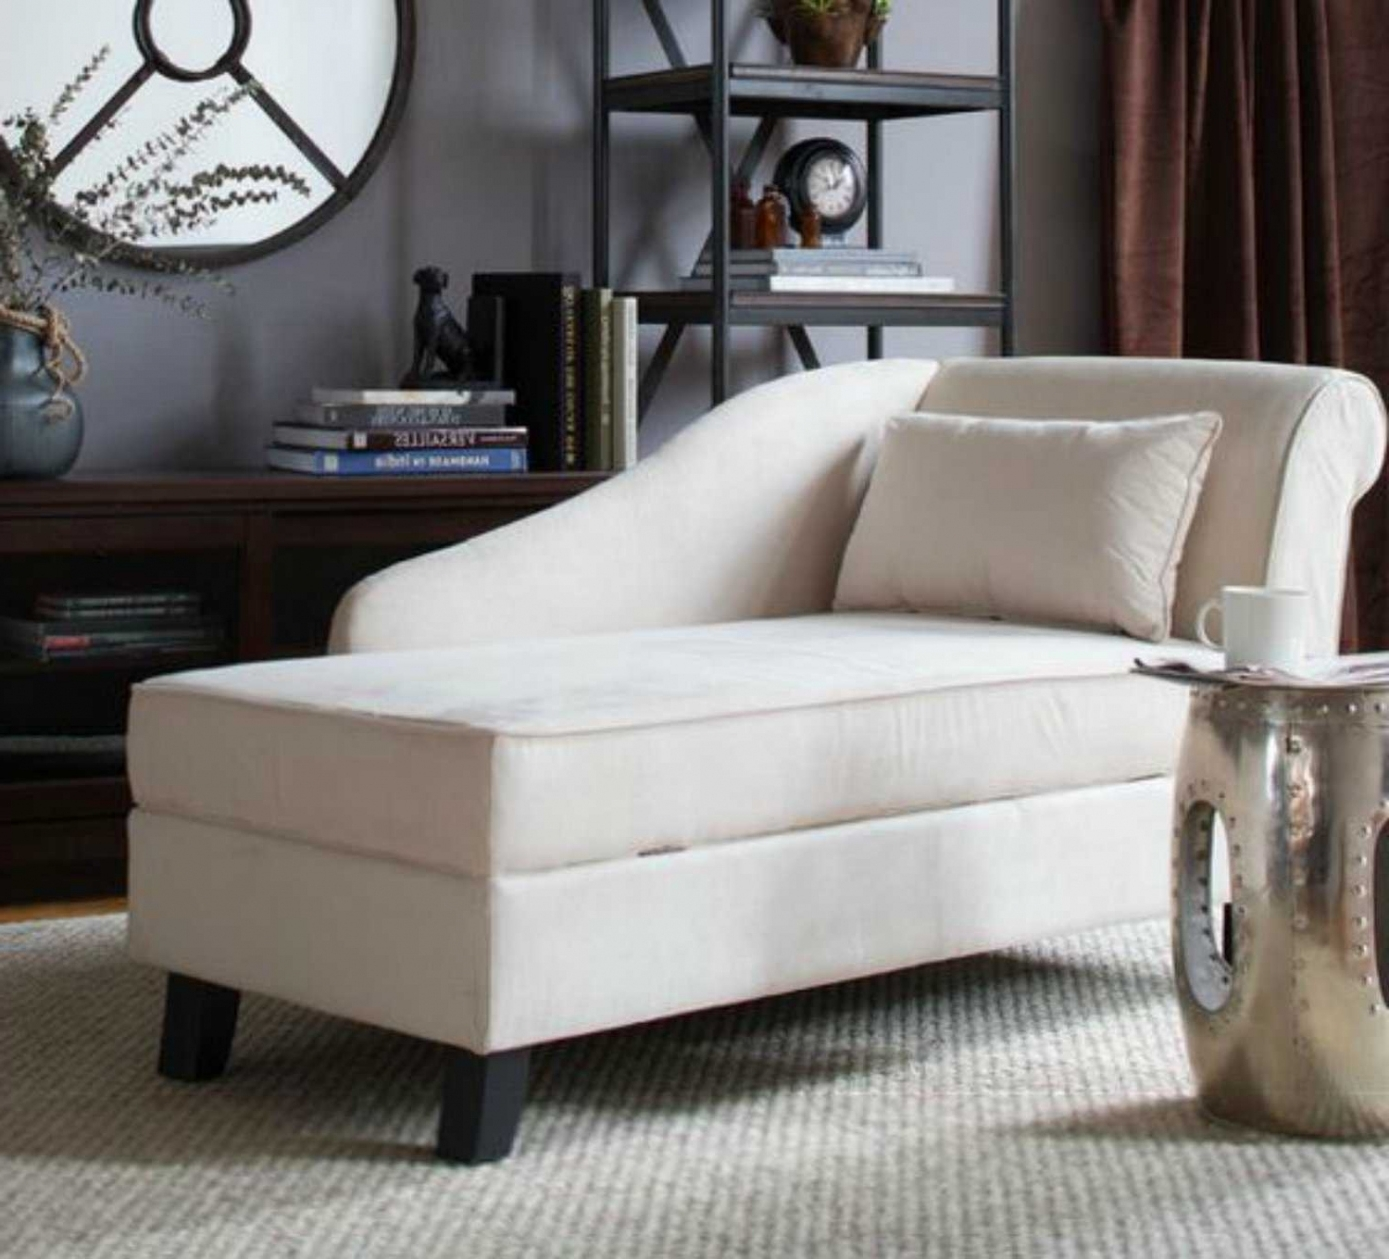 Chaise Chairs For Living Room Intended For Most Recently Released Modern Chaise Lounge Chairs Living Room – Interior Paint Colors (View 12 of 15)